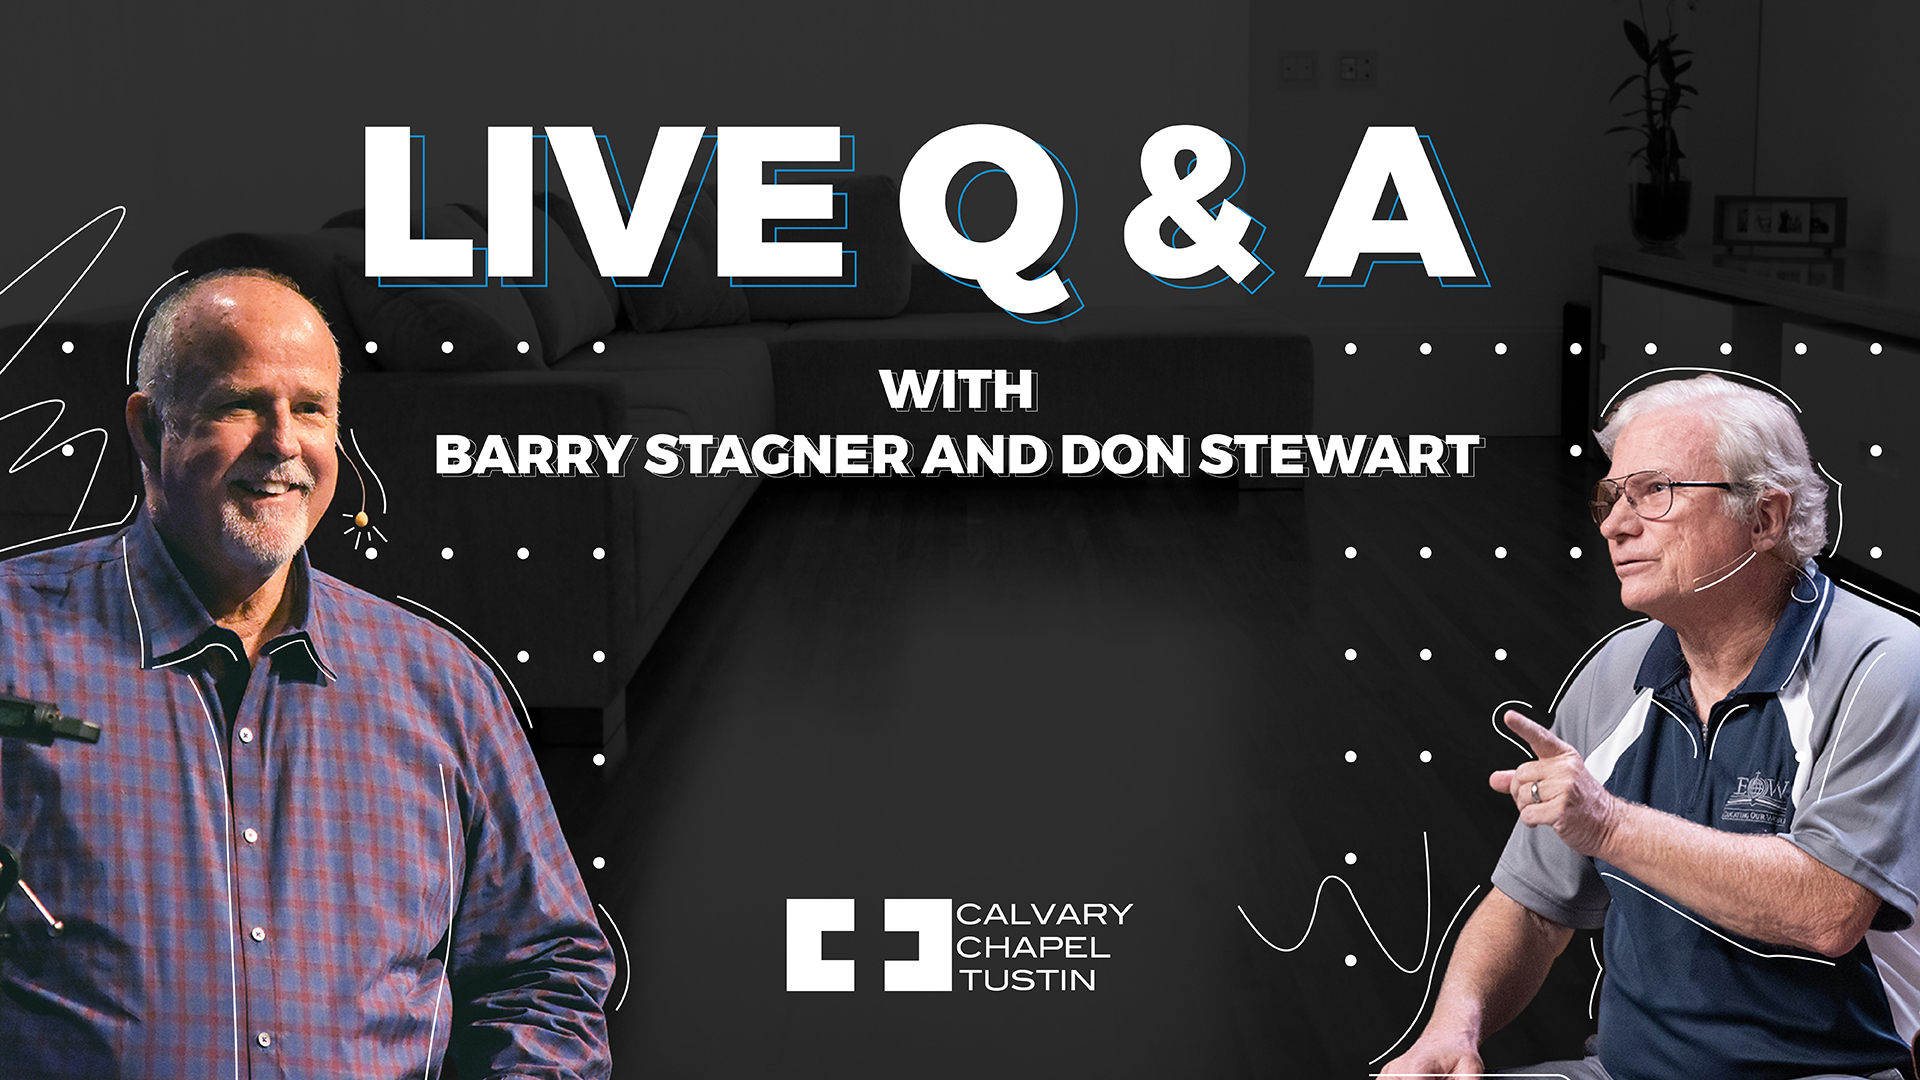 Live QA with Barry Stagner and Don Stewart